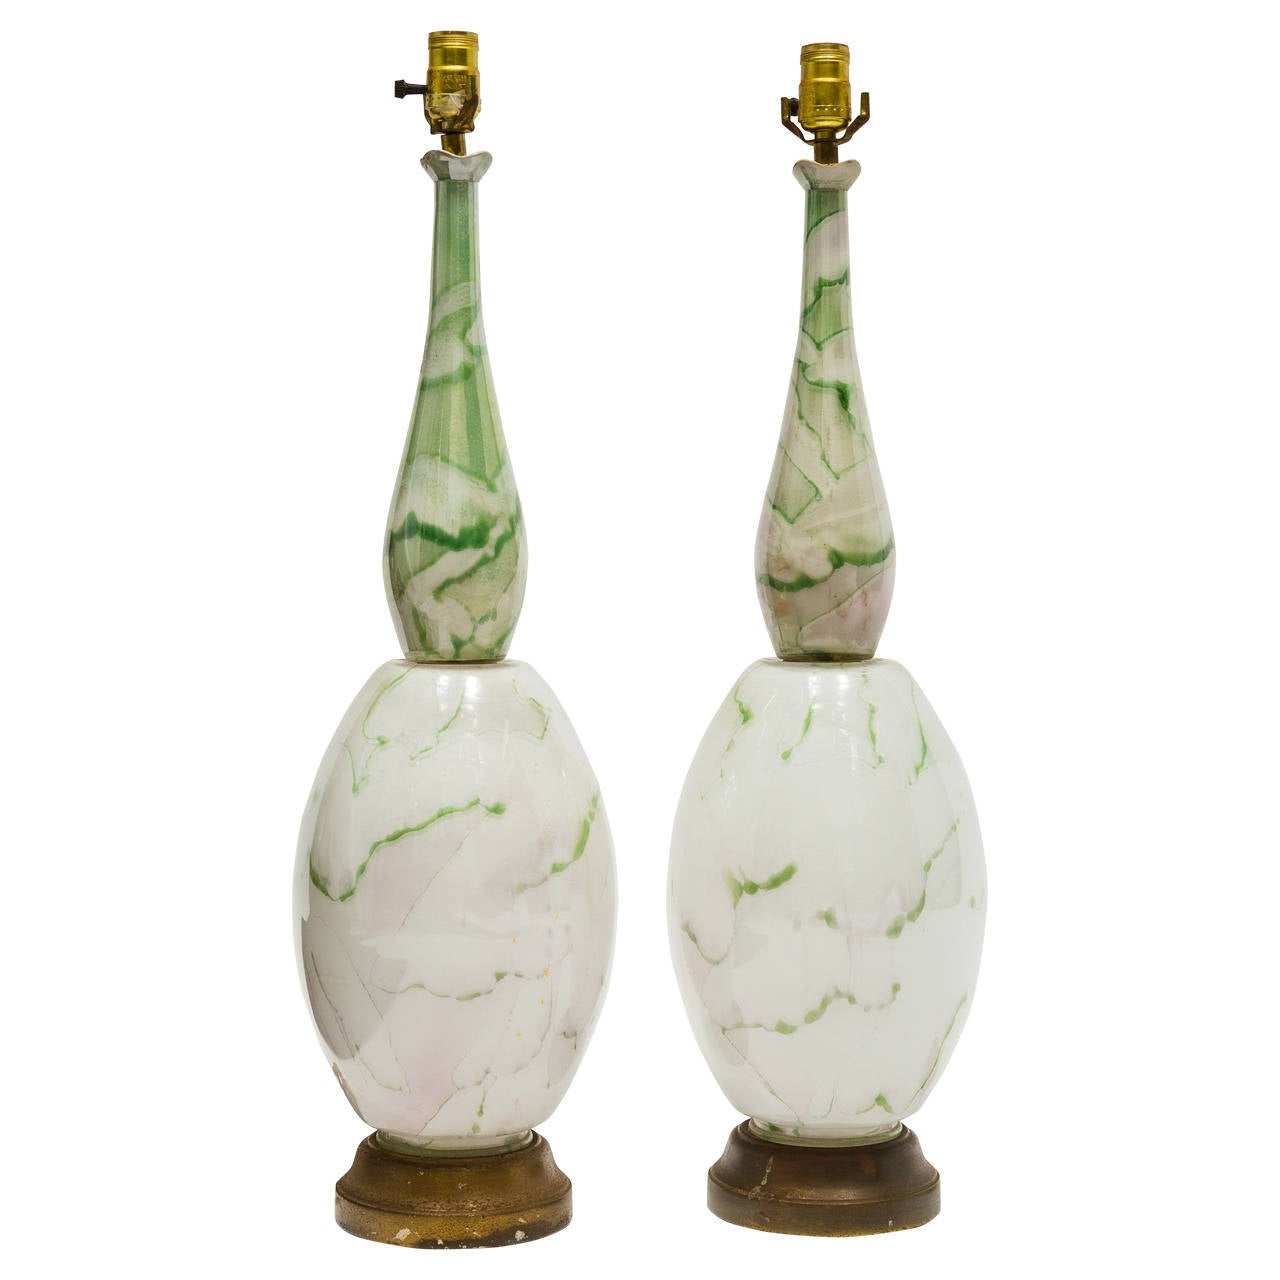 Pair of Green and White Glass Table Lamps